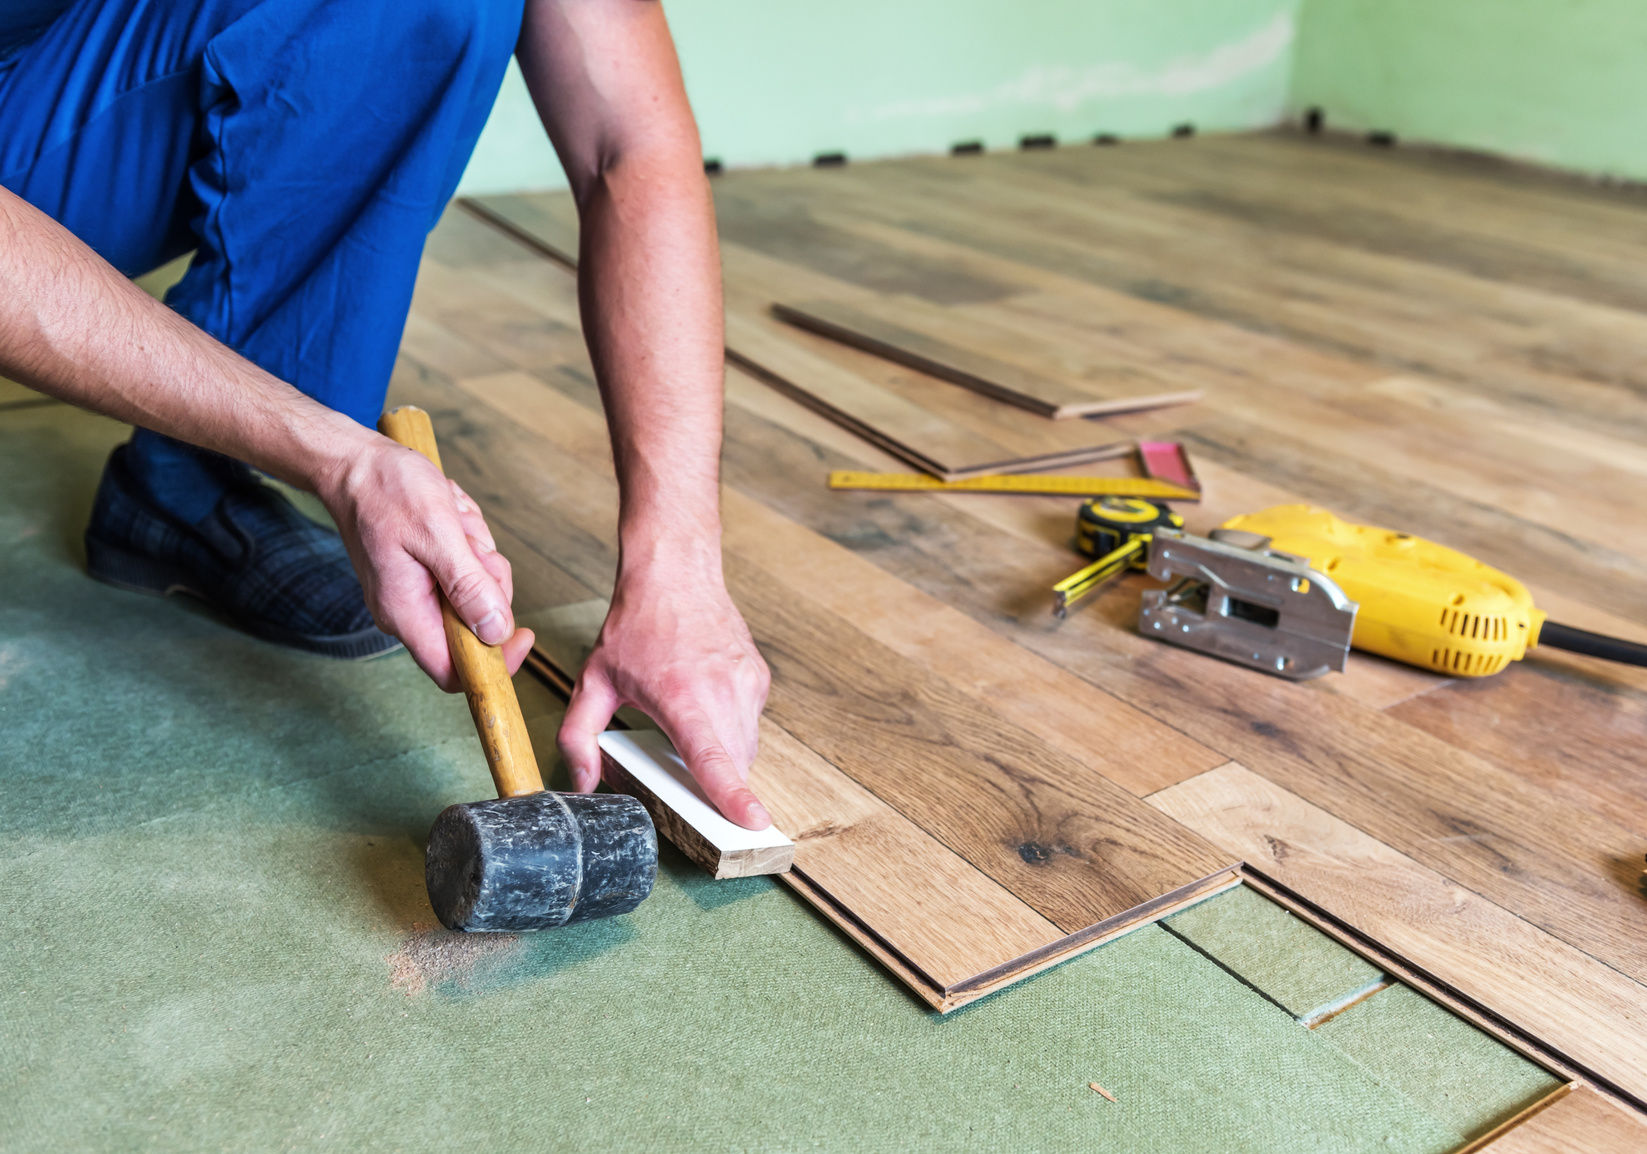 Installing hardwood flooring in a Portland, OR home